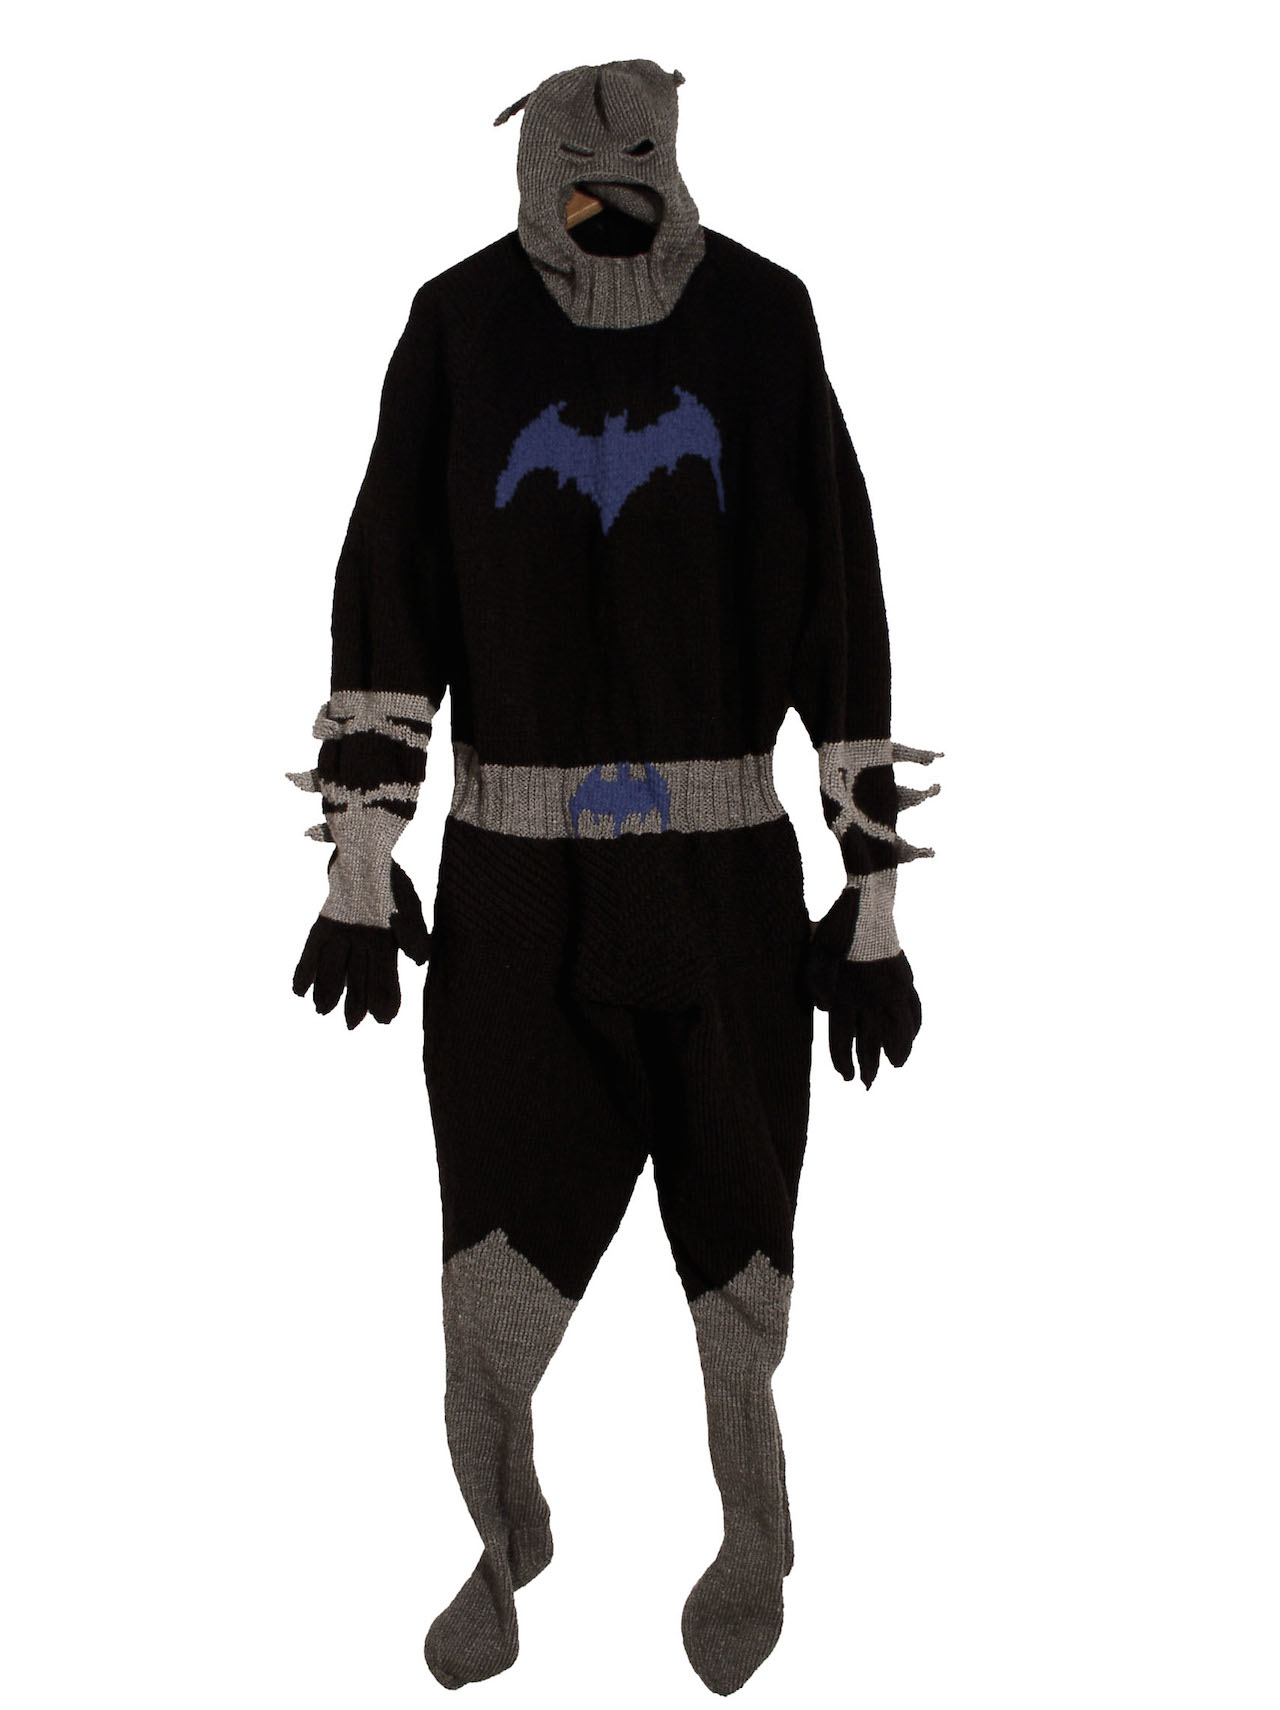 """Mark Newport, """"Batman 2"""" (2005) (Smithsonian American Art Museum, museum purchase through the Richard T. Evans Fund; image courtesy of the artist)"""